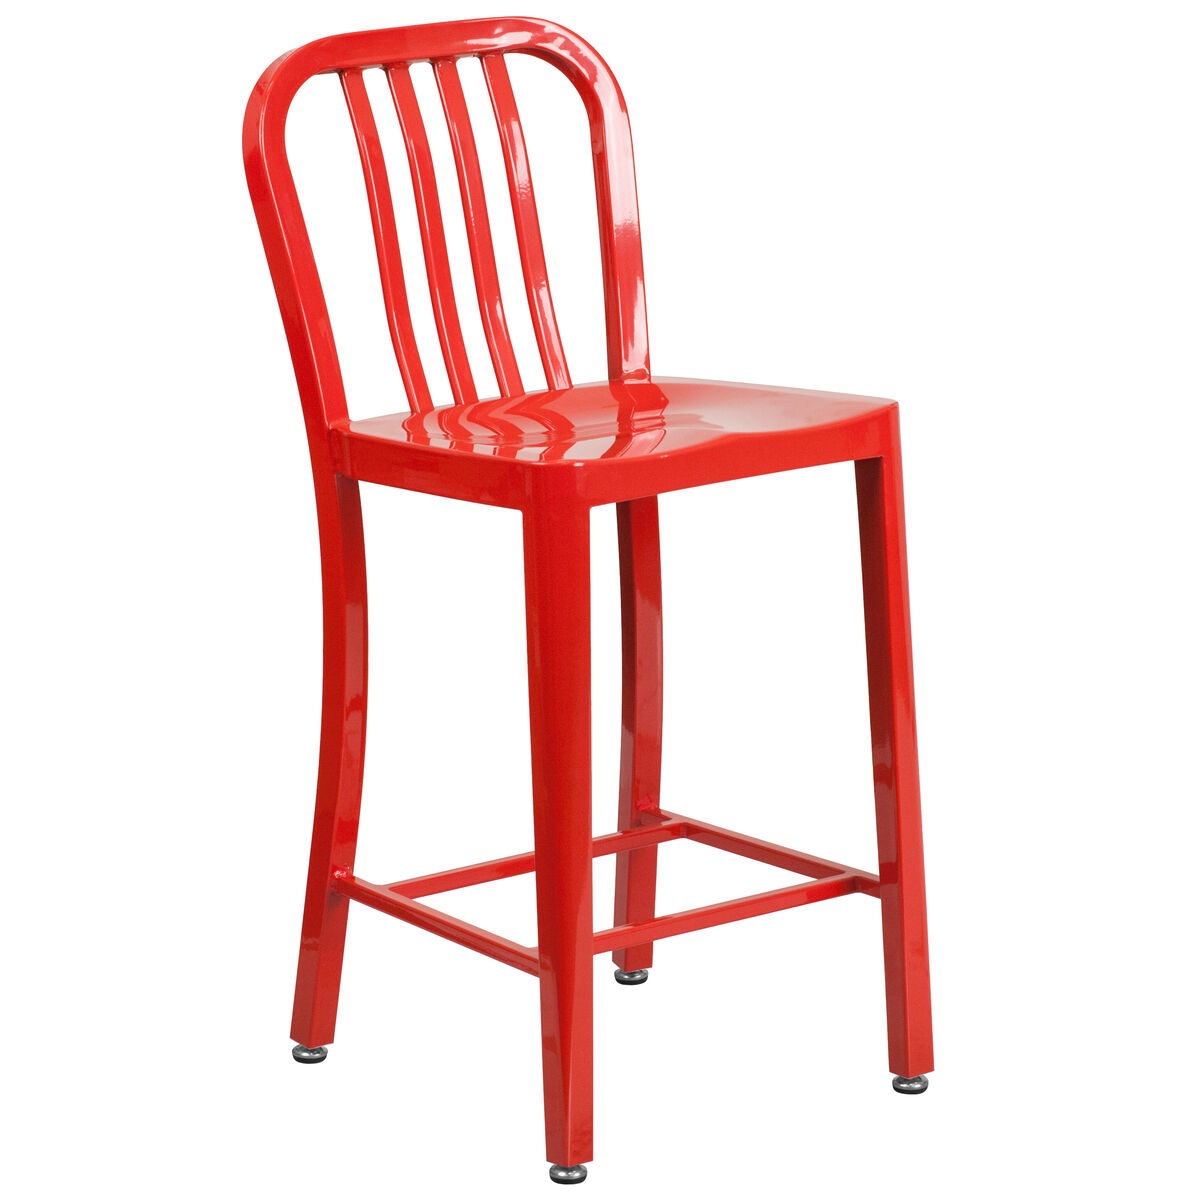 24 Quot Red Metal Outdoor Stool Ch 61200 24 Red Gg Bizchair Com